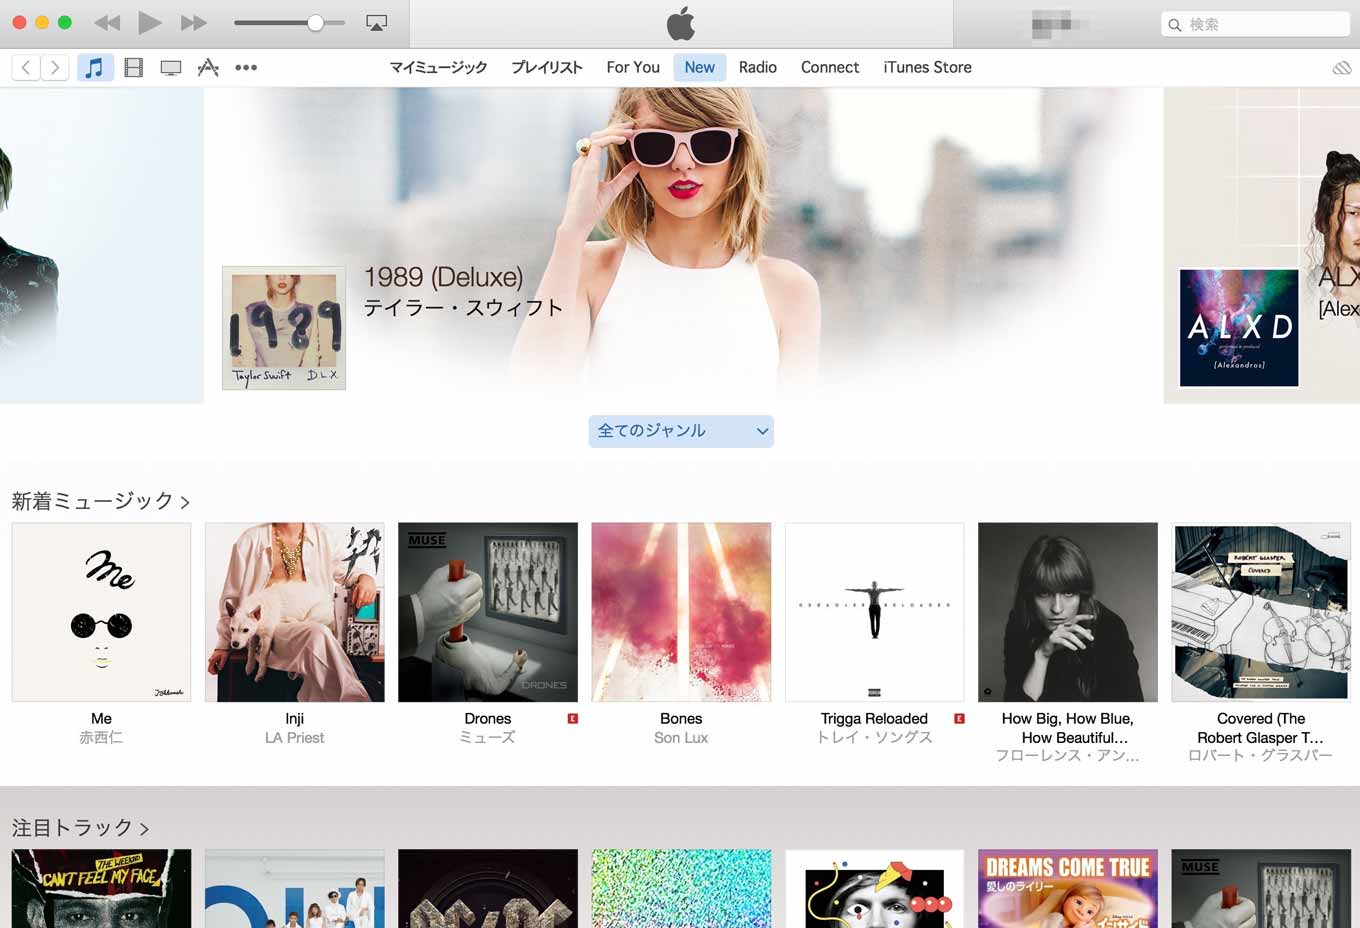 Apple、Apple Musicに対応した「iTunes 12.2」リリース – MacとWindowsで「Apple Music」が利用可能